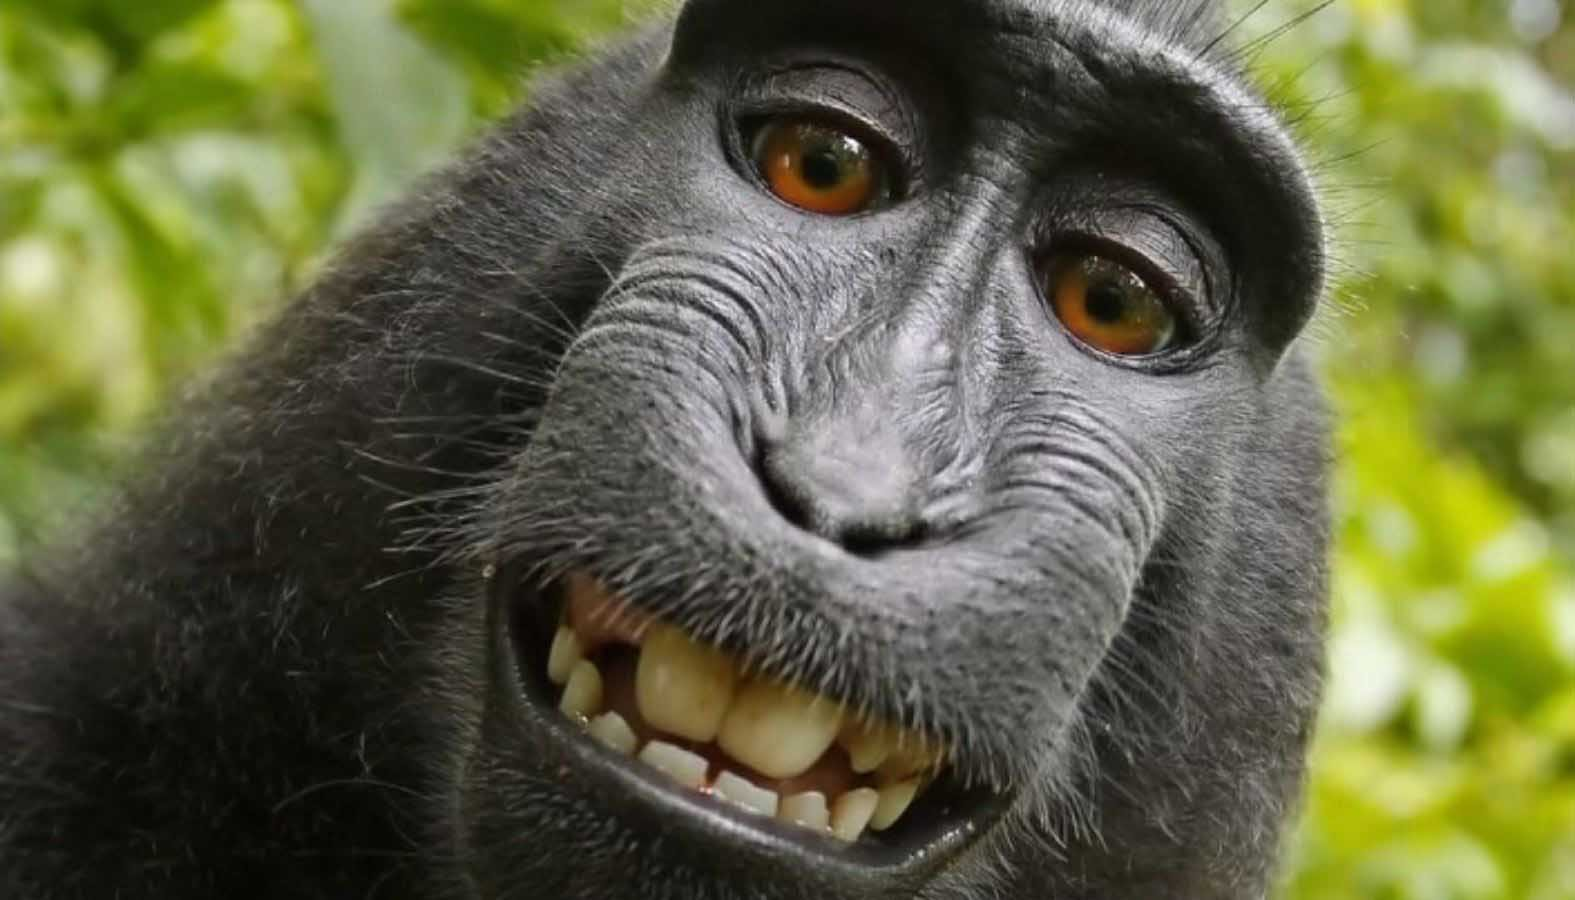 A federal court said that animals may not sue for copyright protection in a ruling on a lawsuit over a series of entertaining selfies taken by a monkey. (Source: David Slater/KGO/CNN)